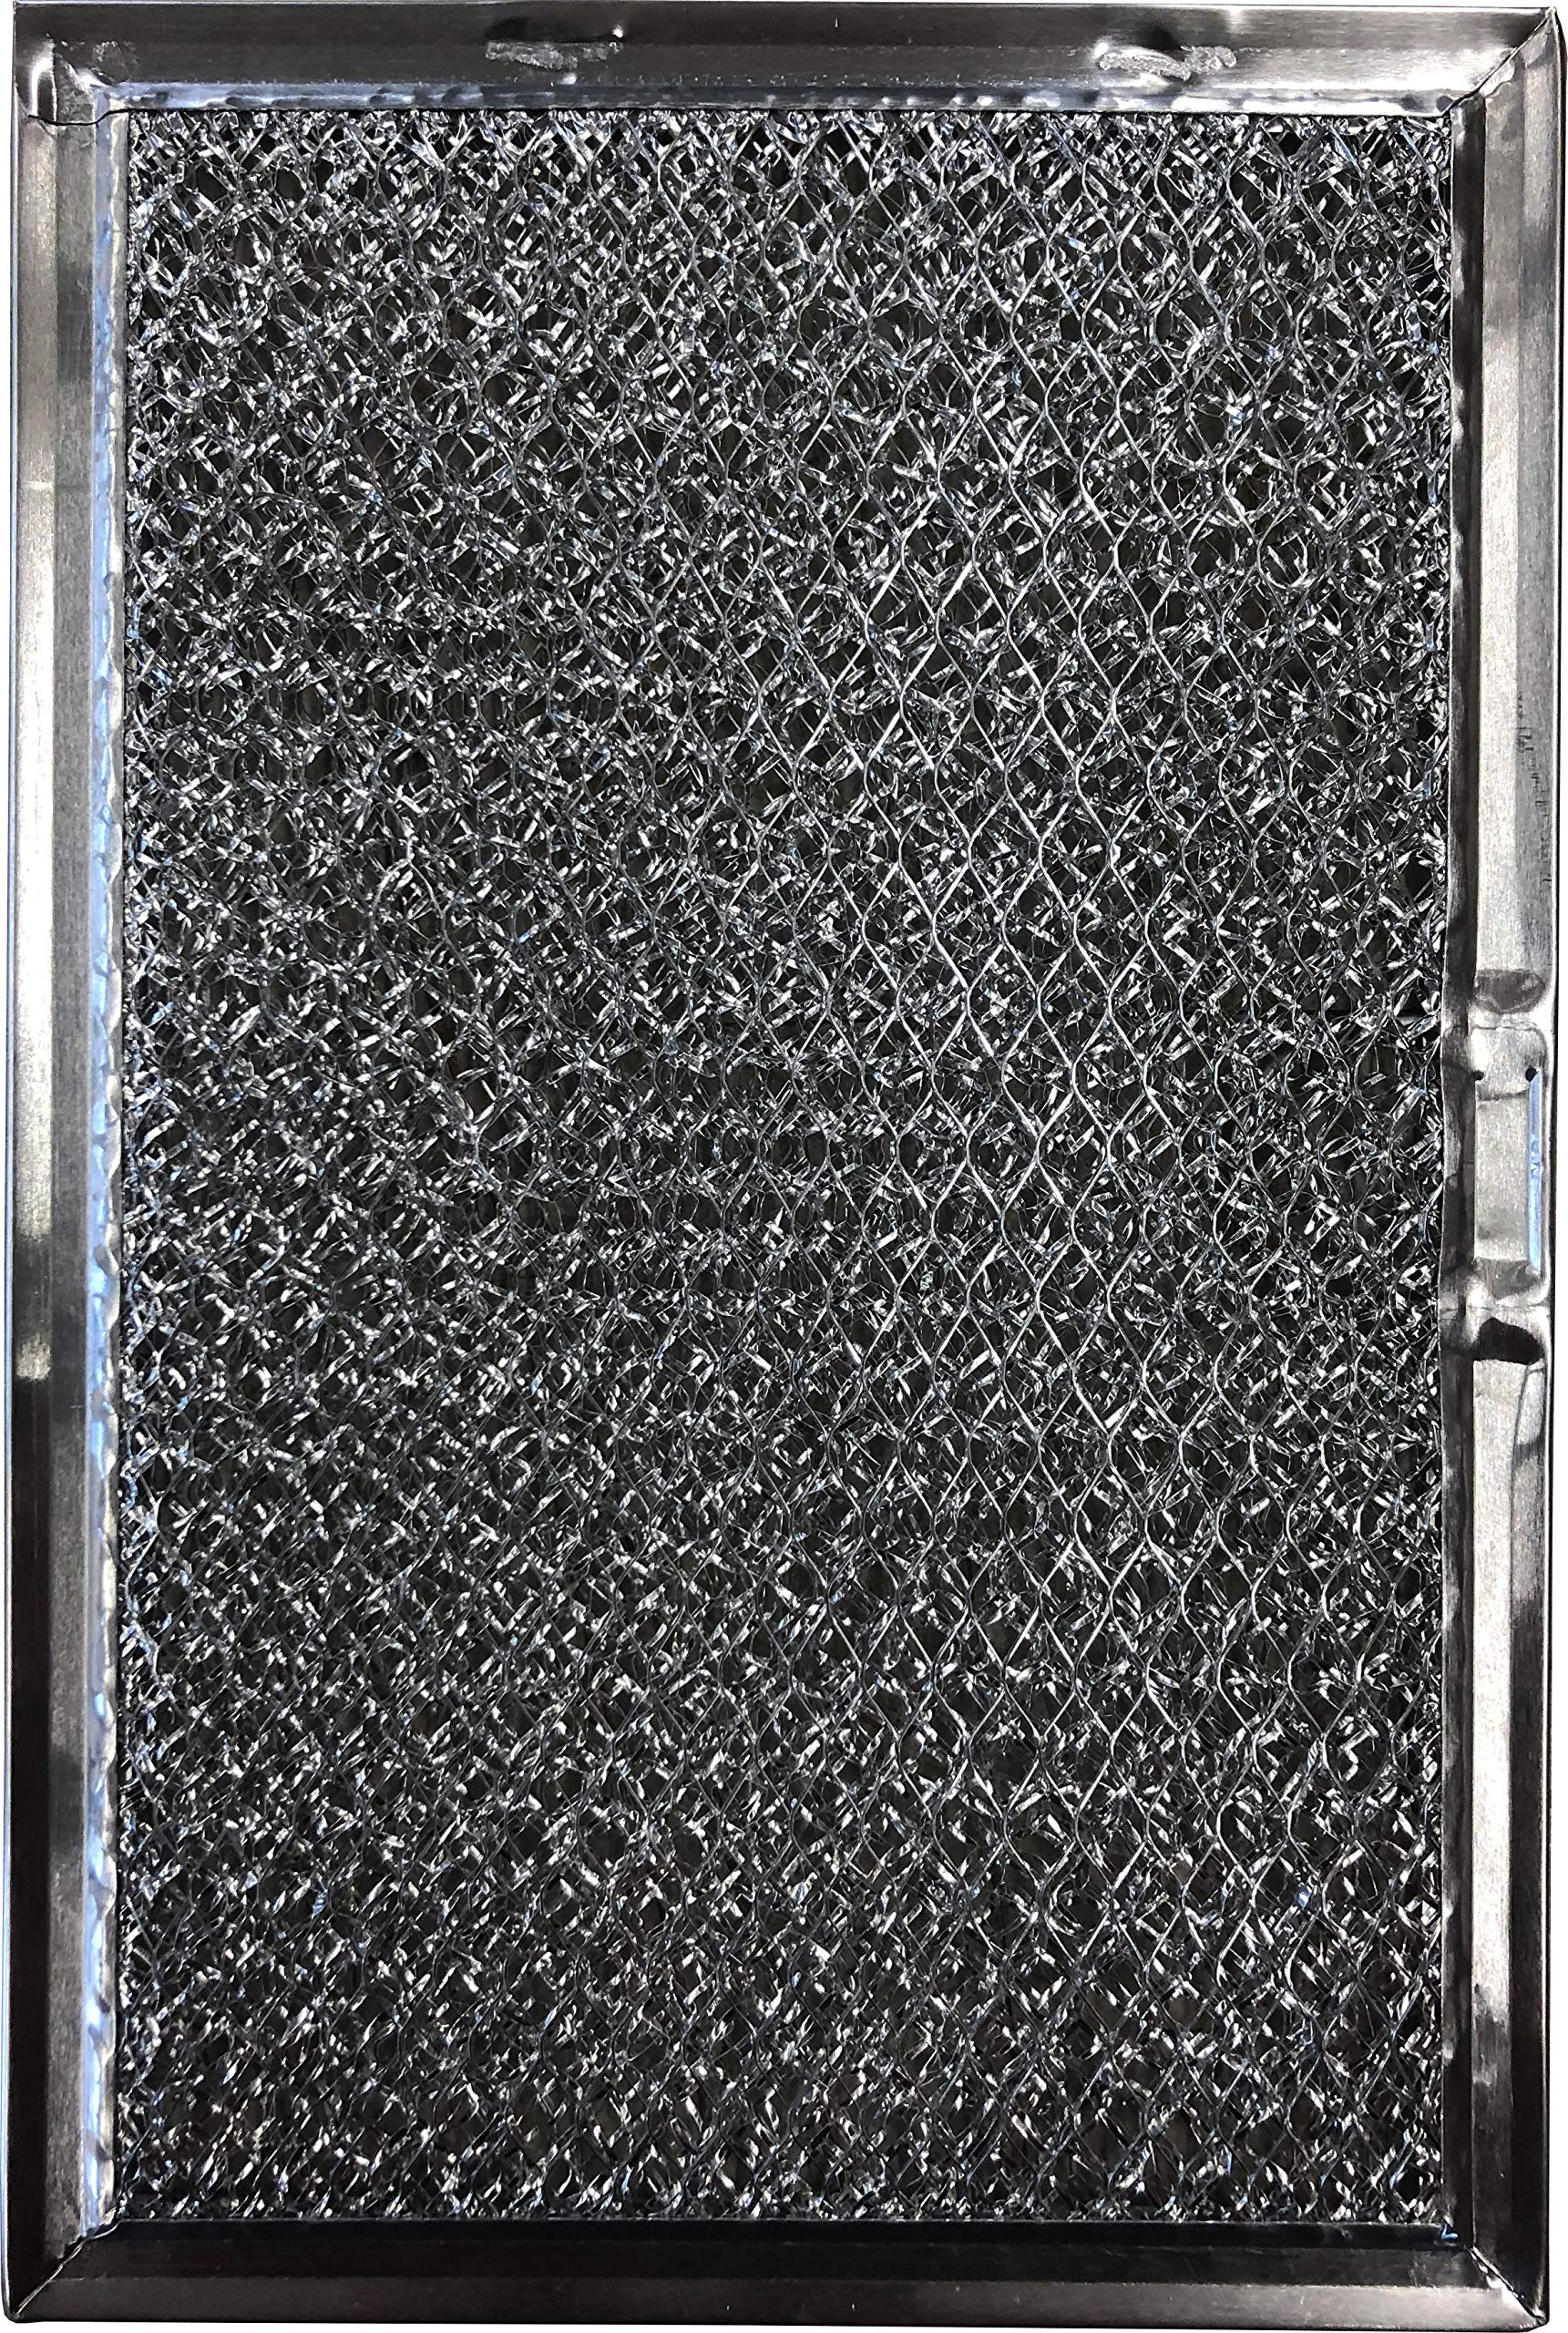 Replacement Aluminum Range Filter Compatible With Broan 97009786A, Creda 97009786A, LG / Zenith 9700